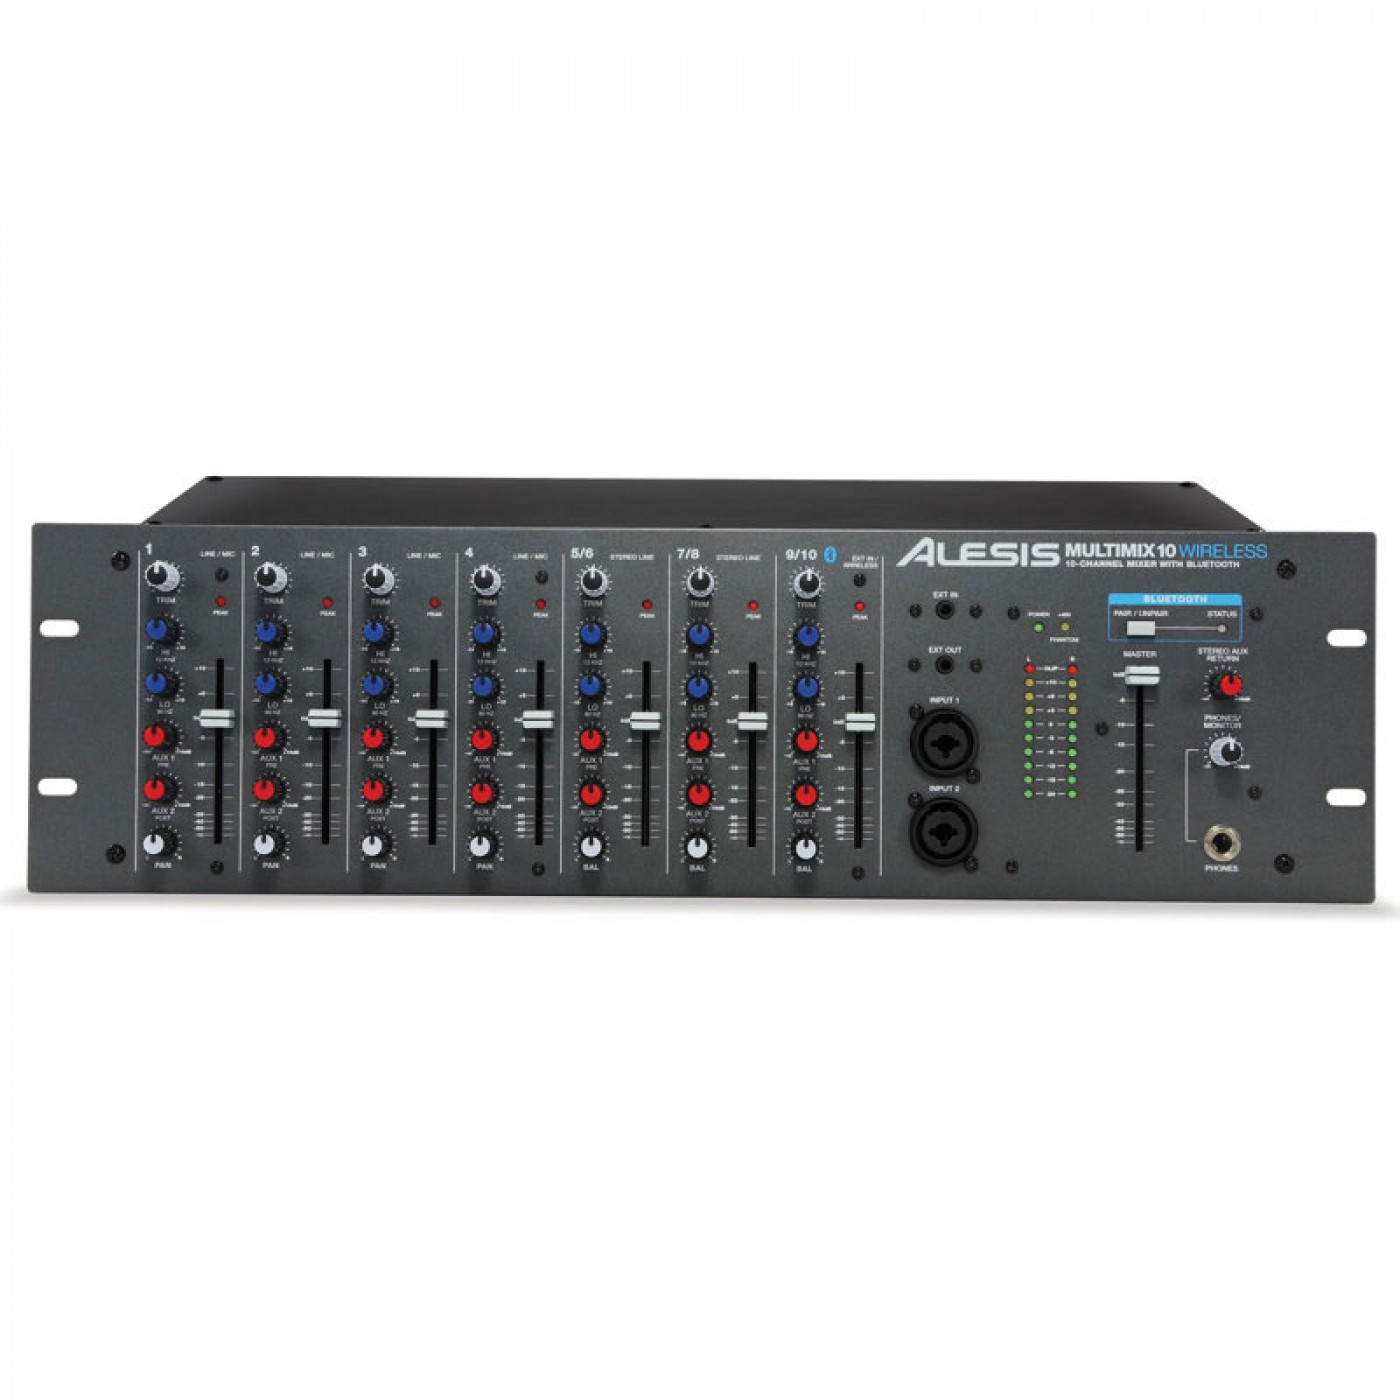 Alesis MULTIMIX 10 Wireless | Rage Audio